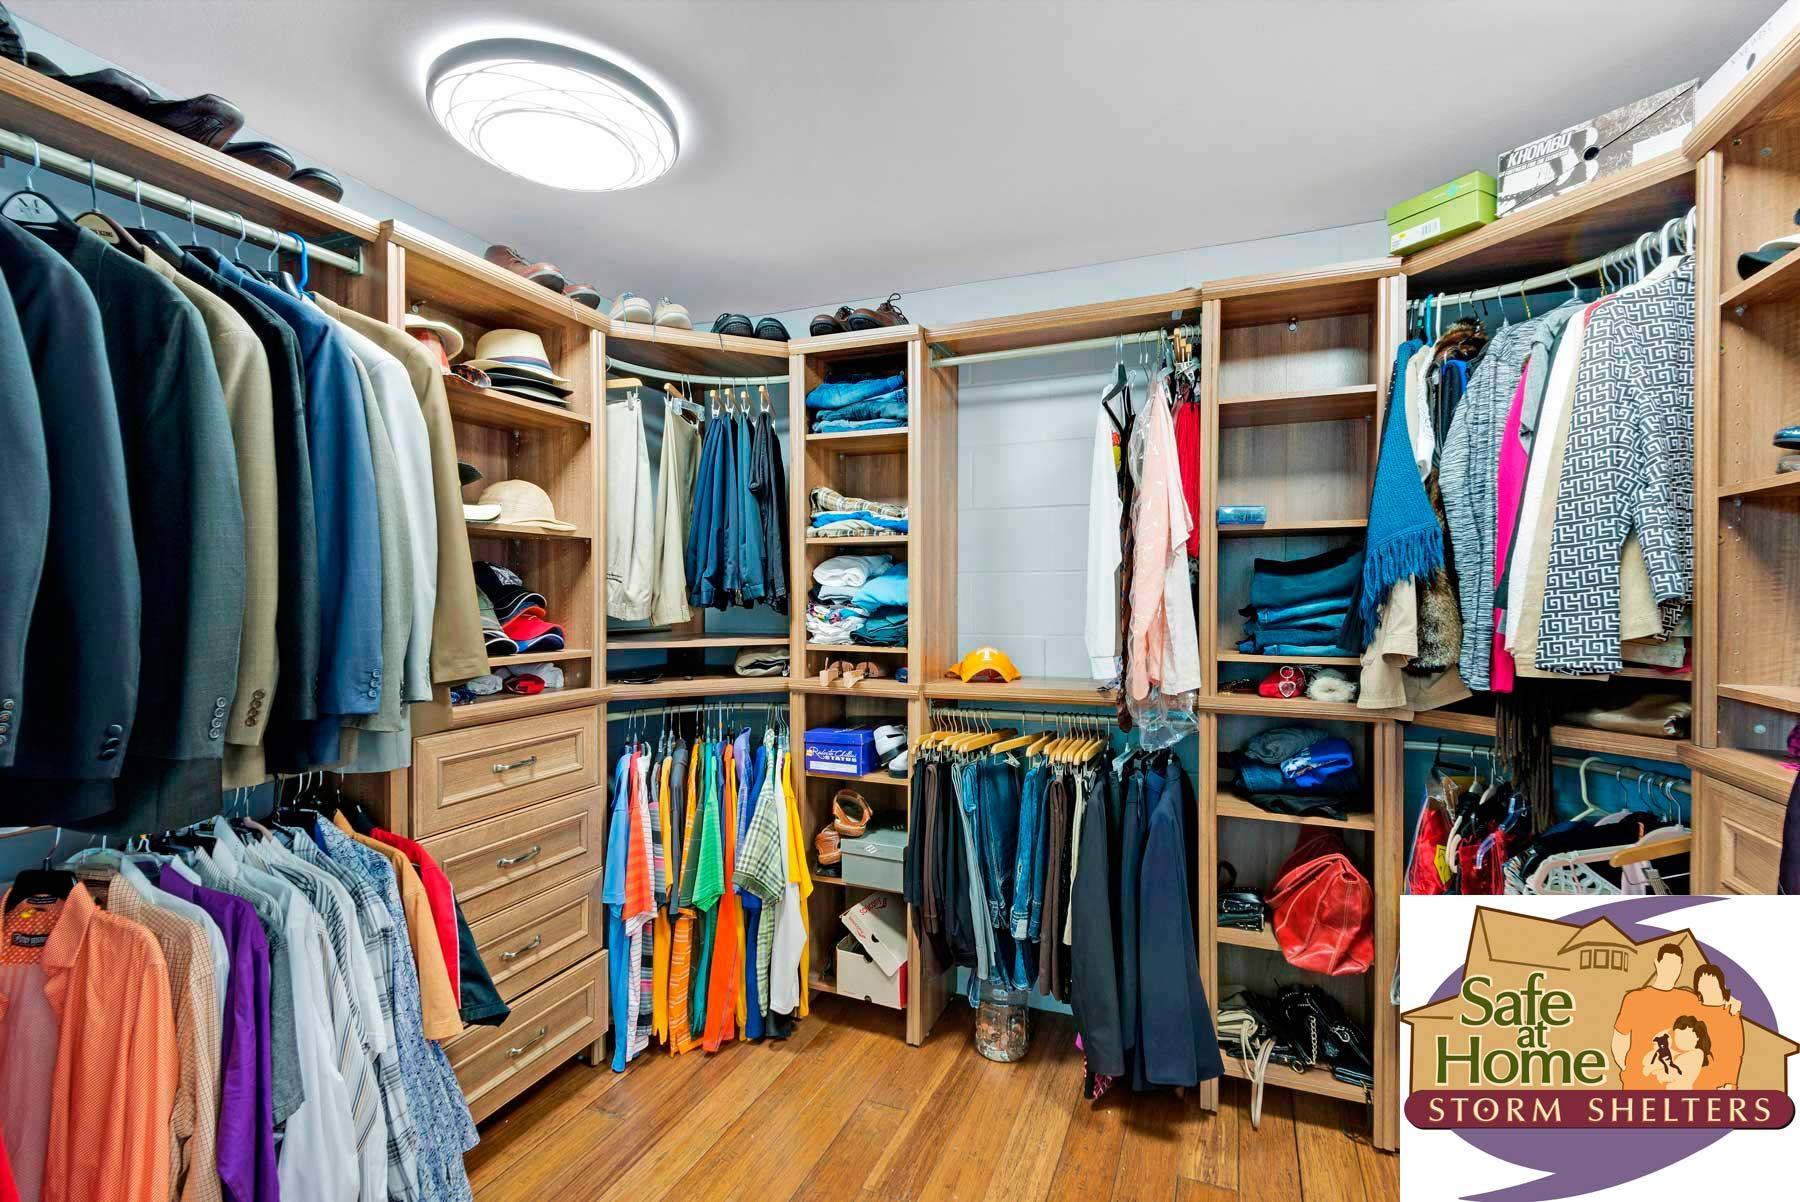 Superieur This Master Closet Doubles As A Safe Room, Easy To Get To In An Emergency.